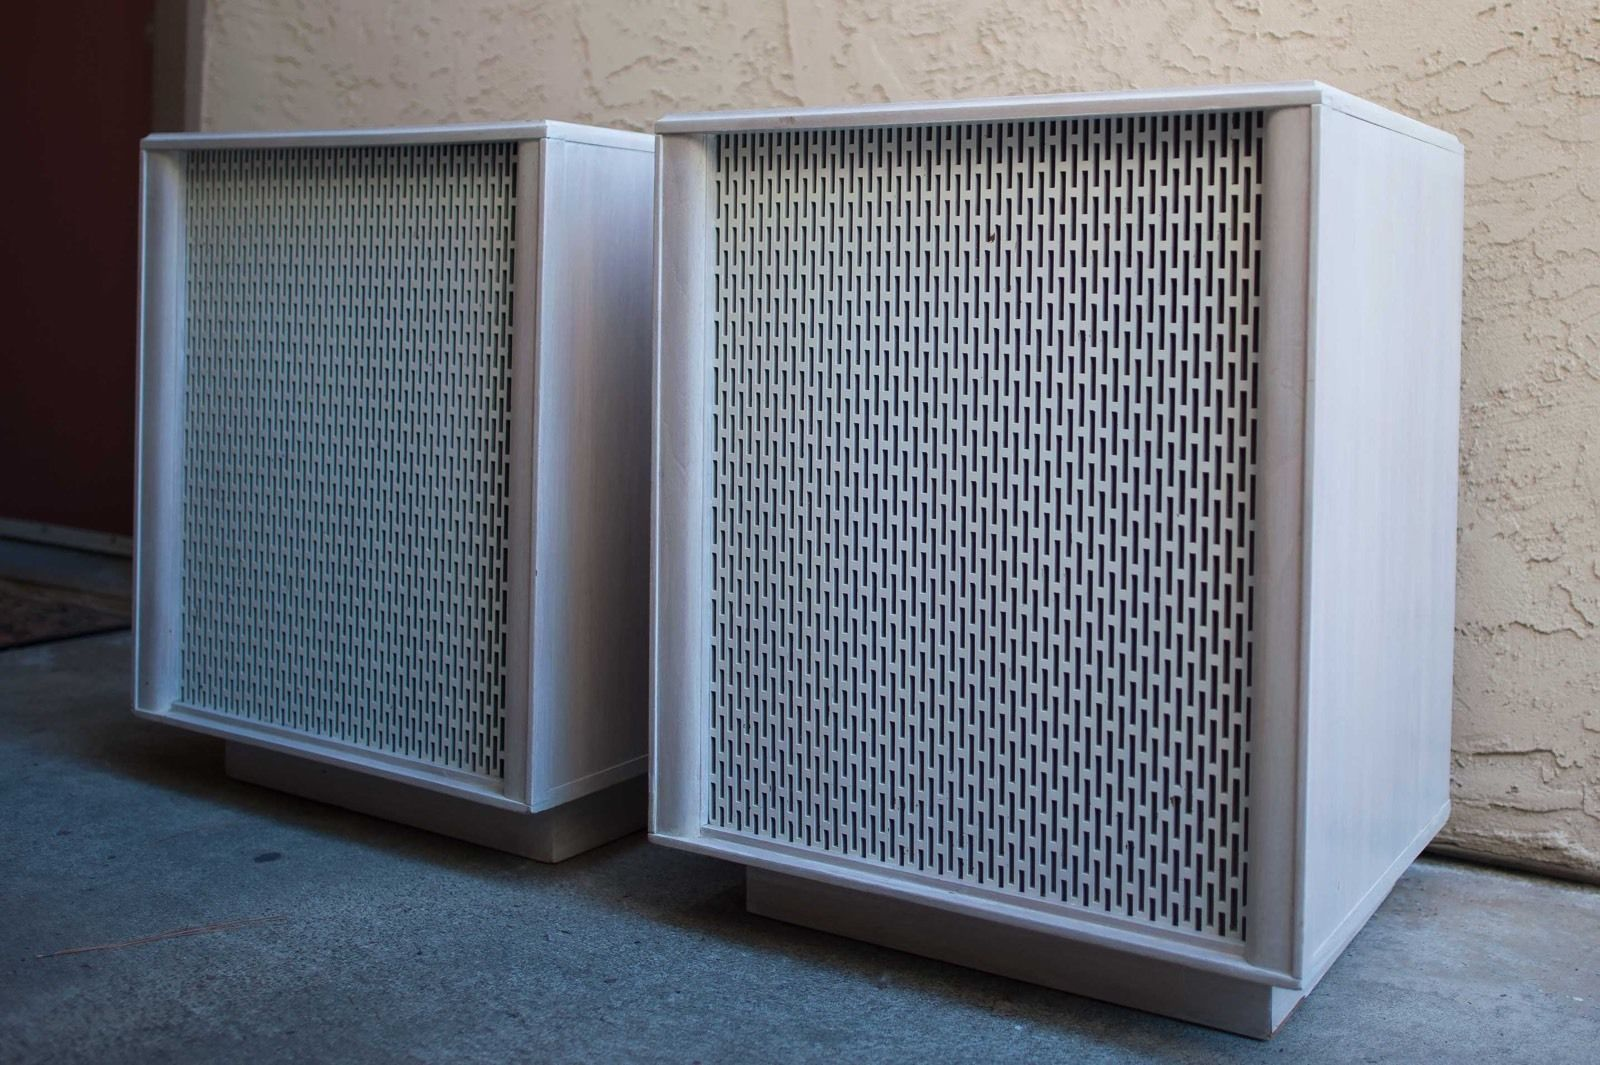 JBL vintage speakers LE14A, LE20, LX8 Crossover | eBay